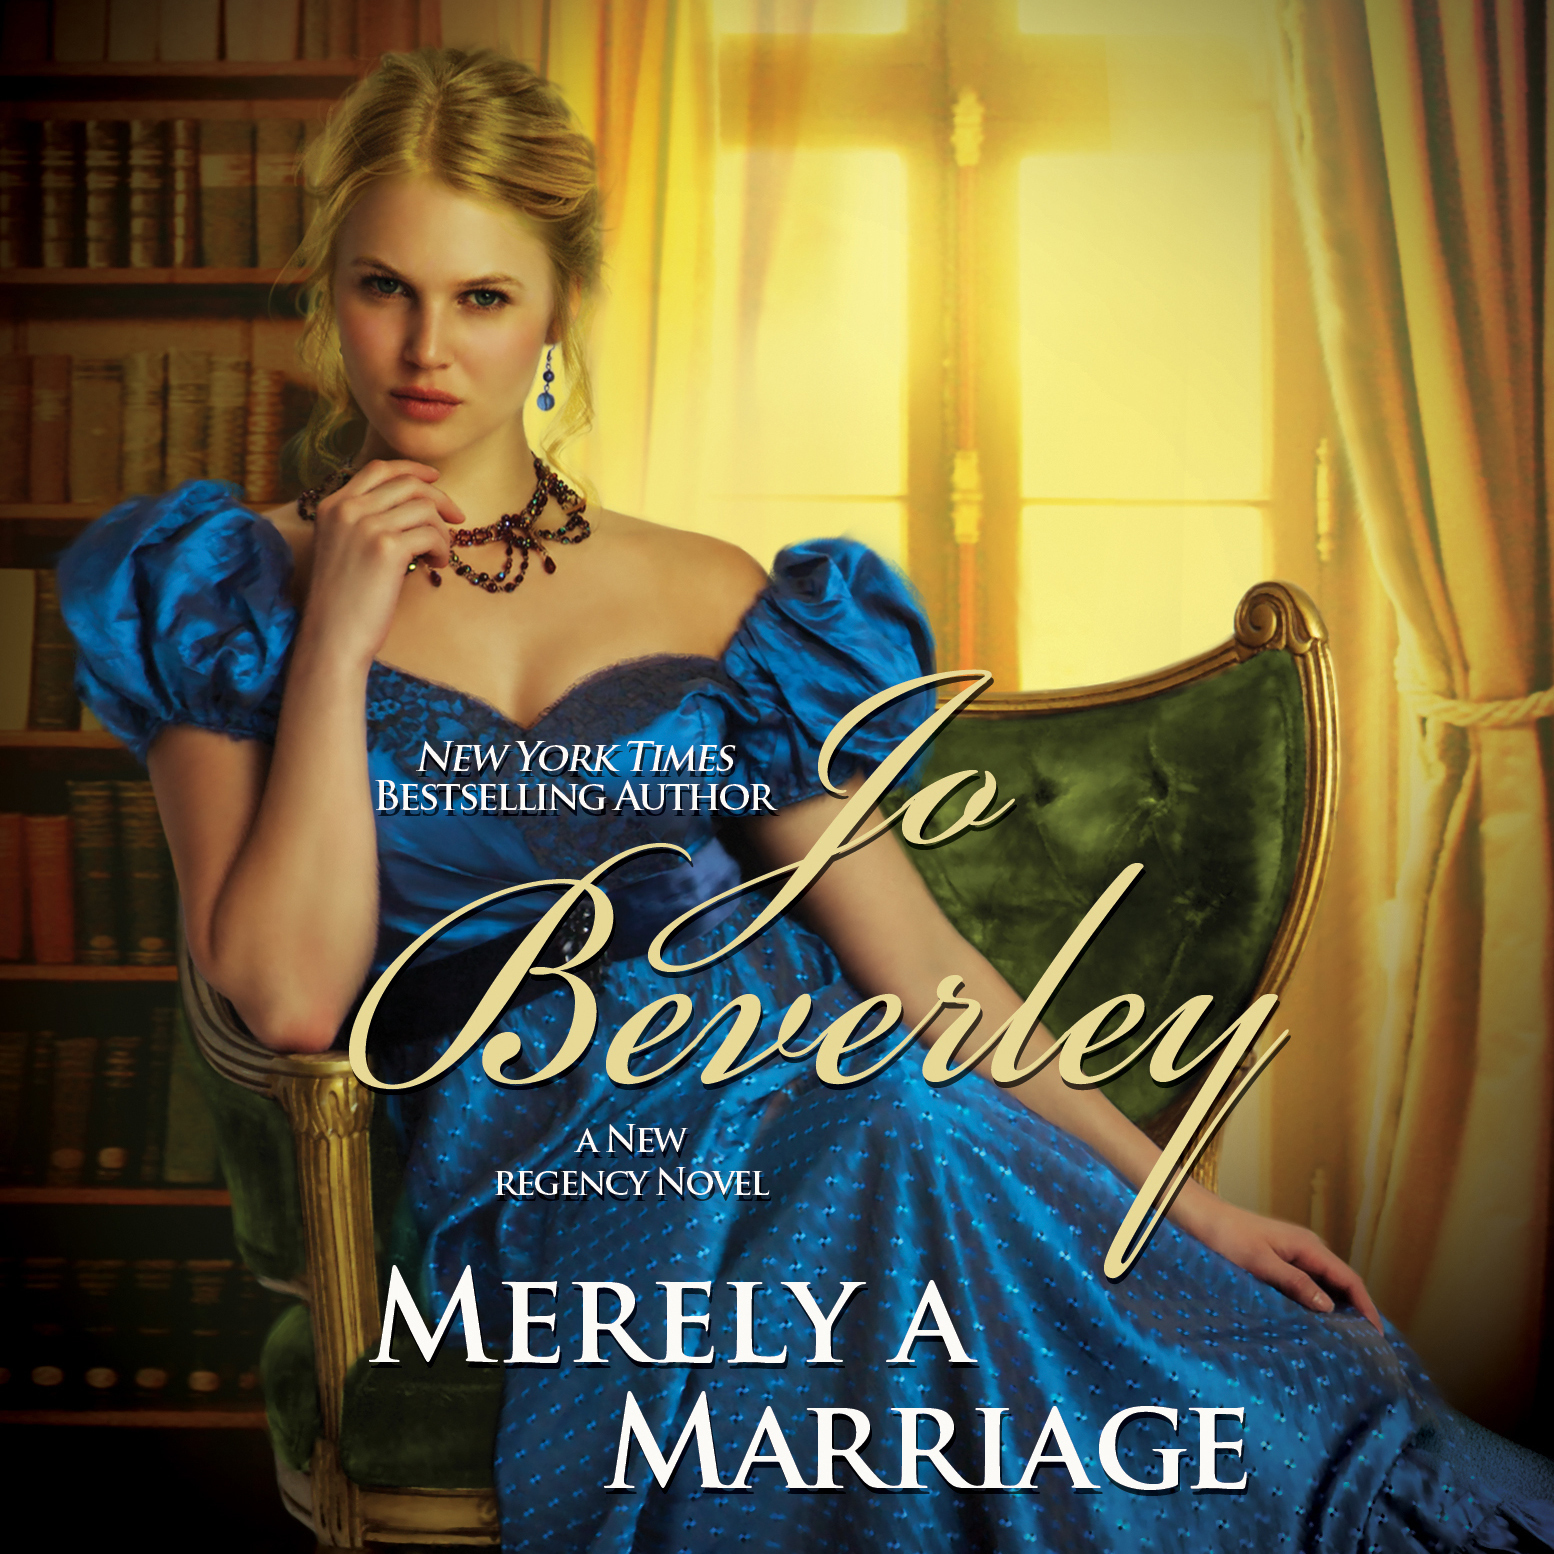 Printable Merely a Marriage: A New Regency Novel Audiobook Cover Art